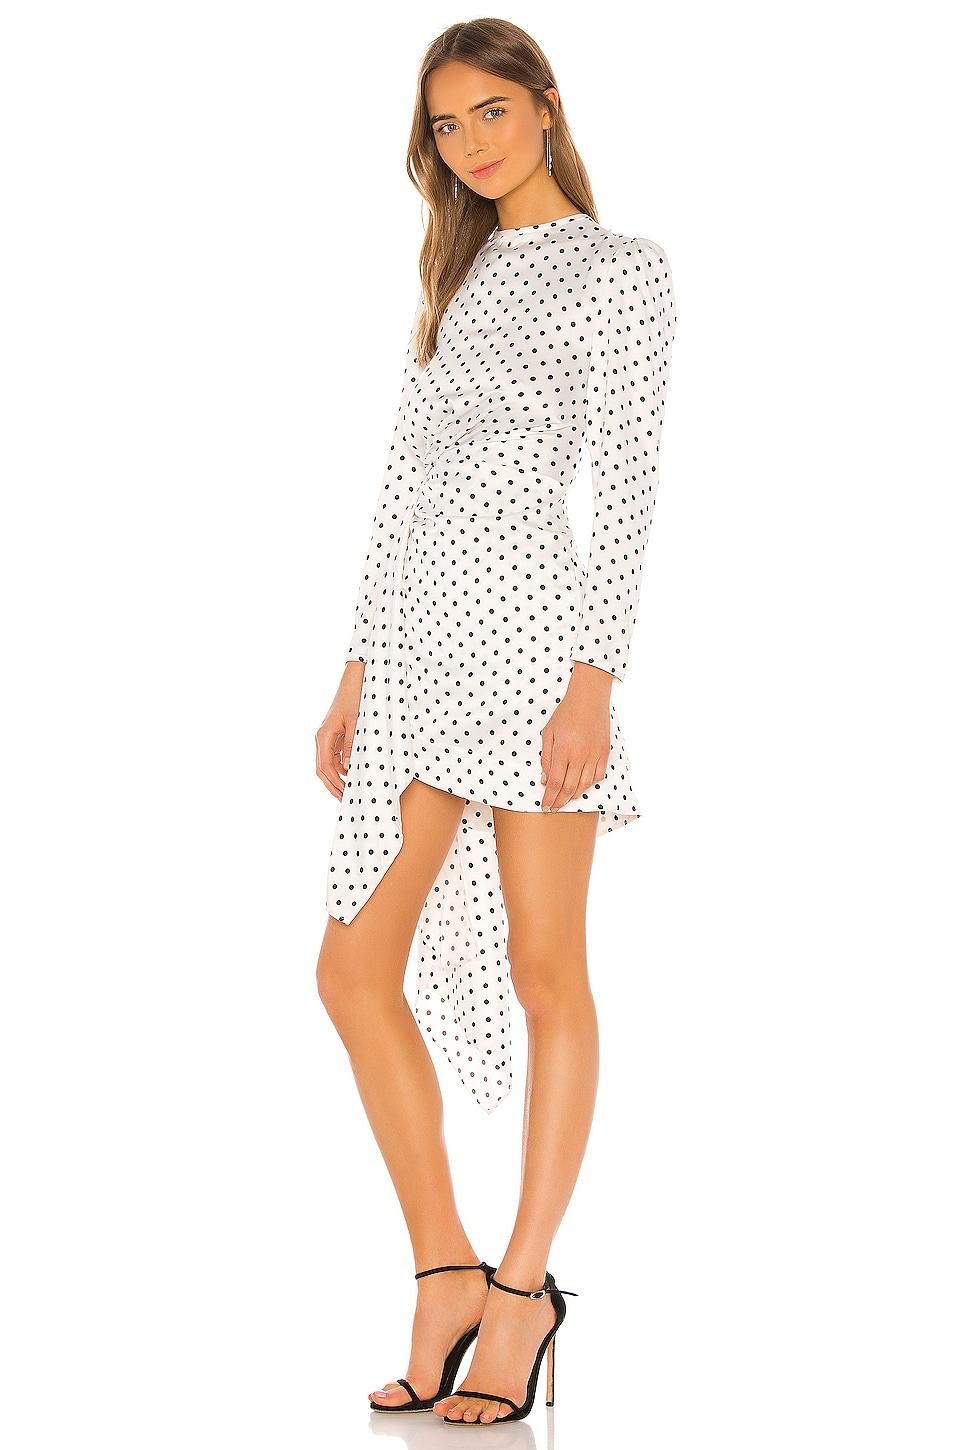 Foolish Long Sleeve Mini Dress, view 3, click to view large image.